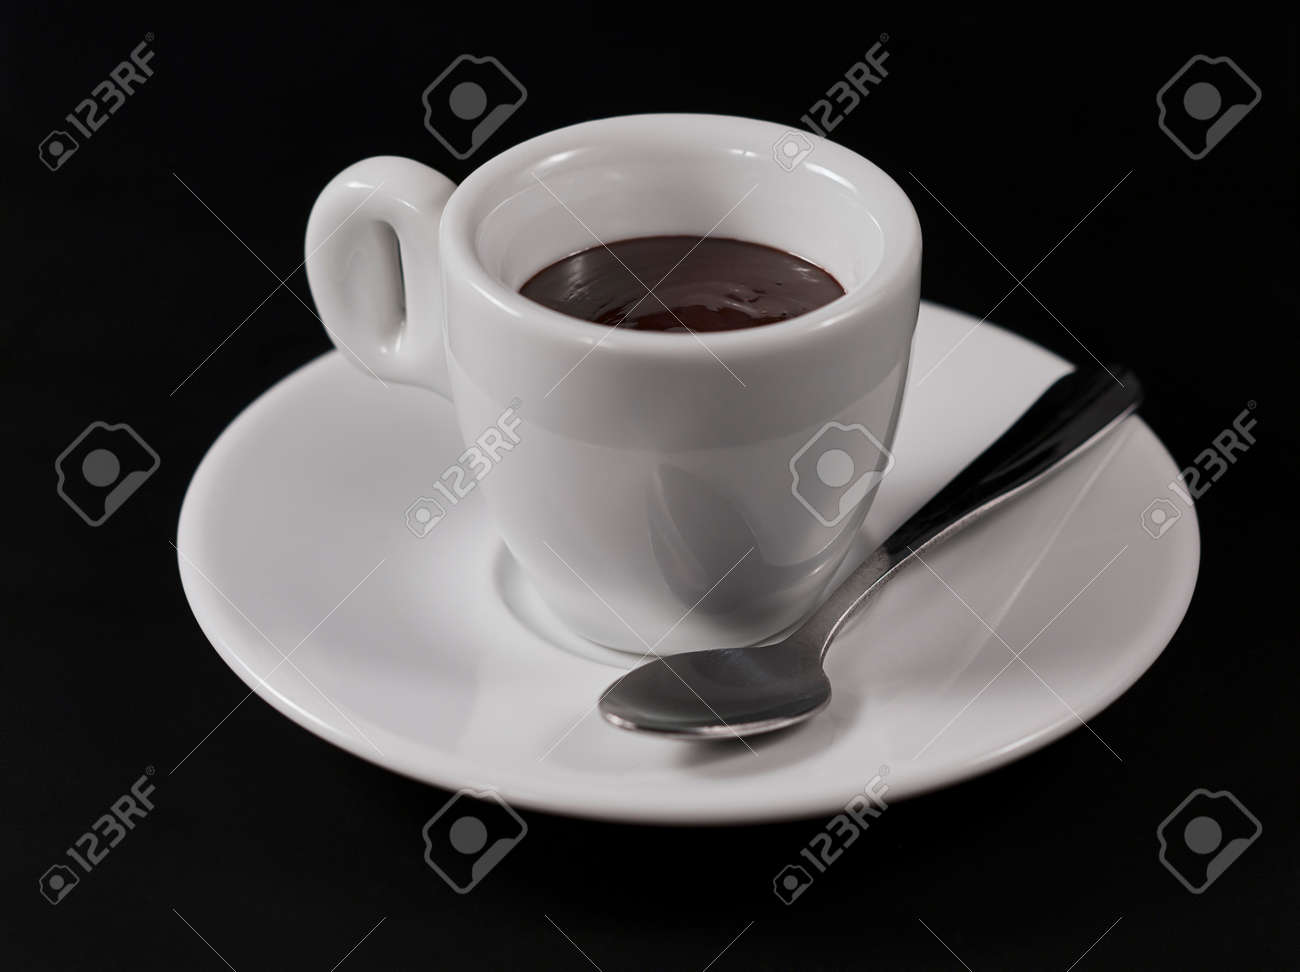 hot chocolate in a Cup on a black background - 144592184